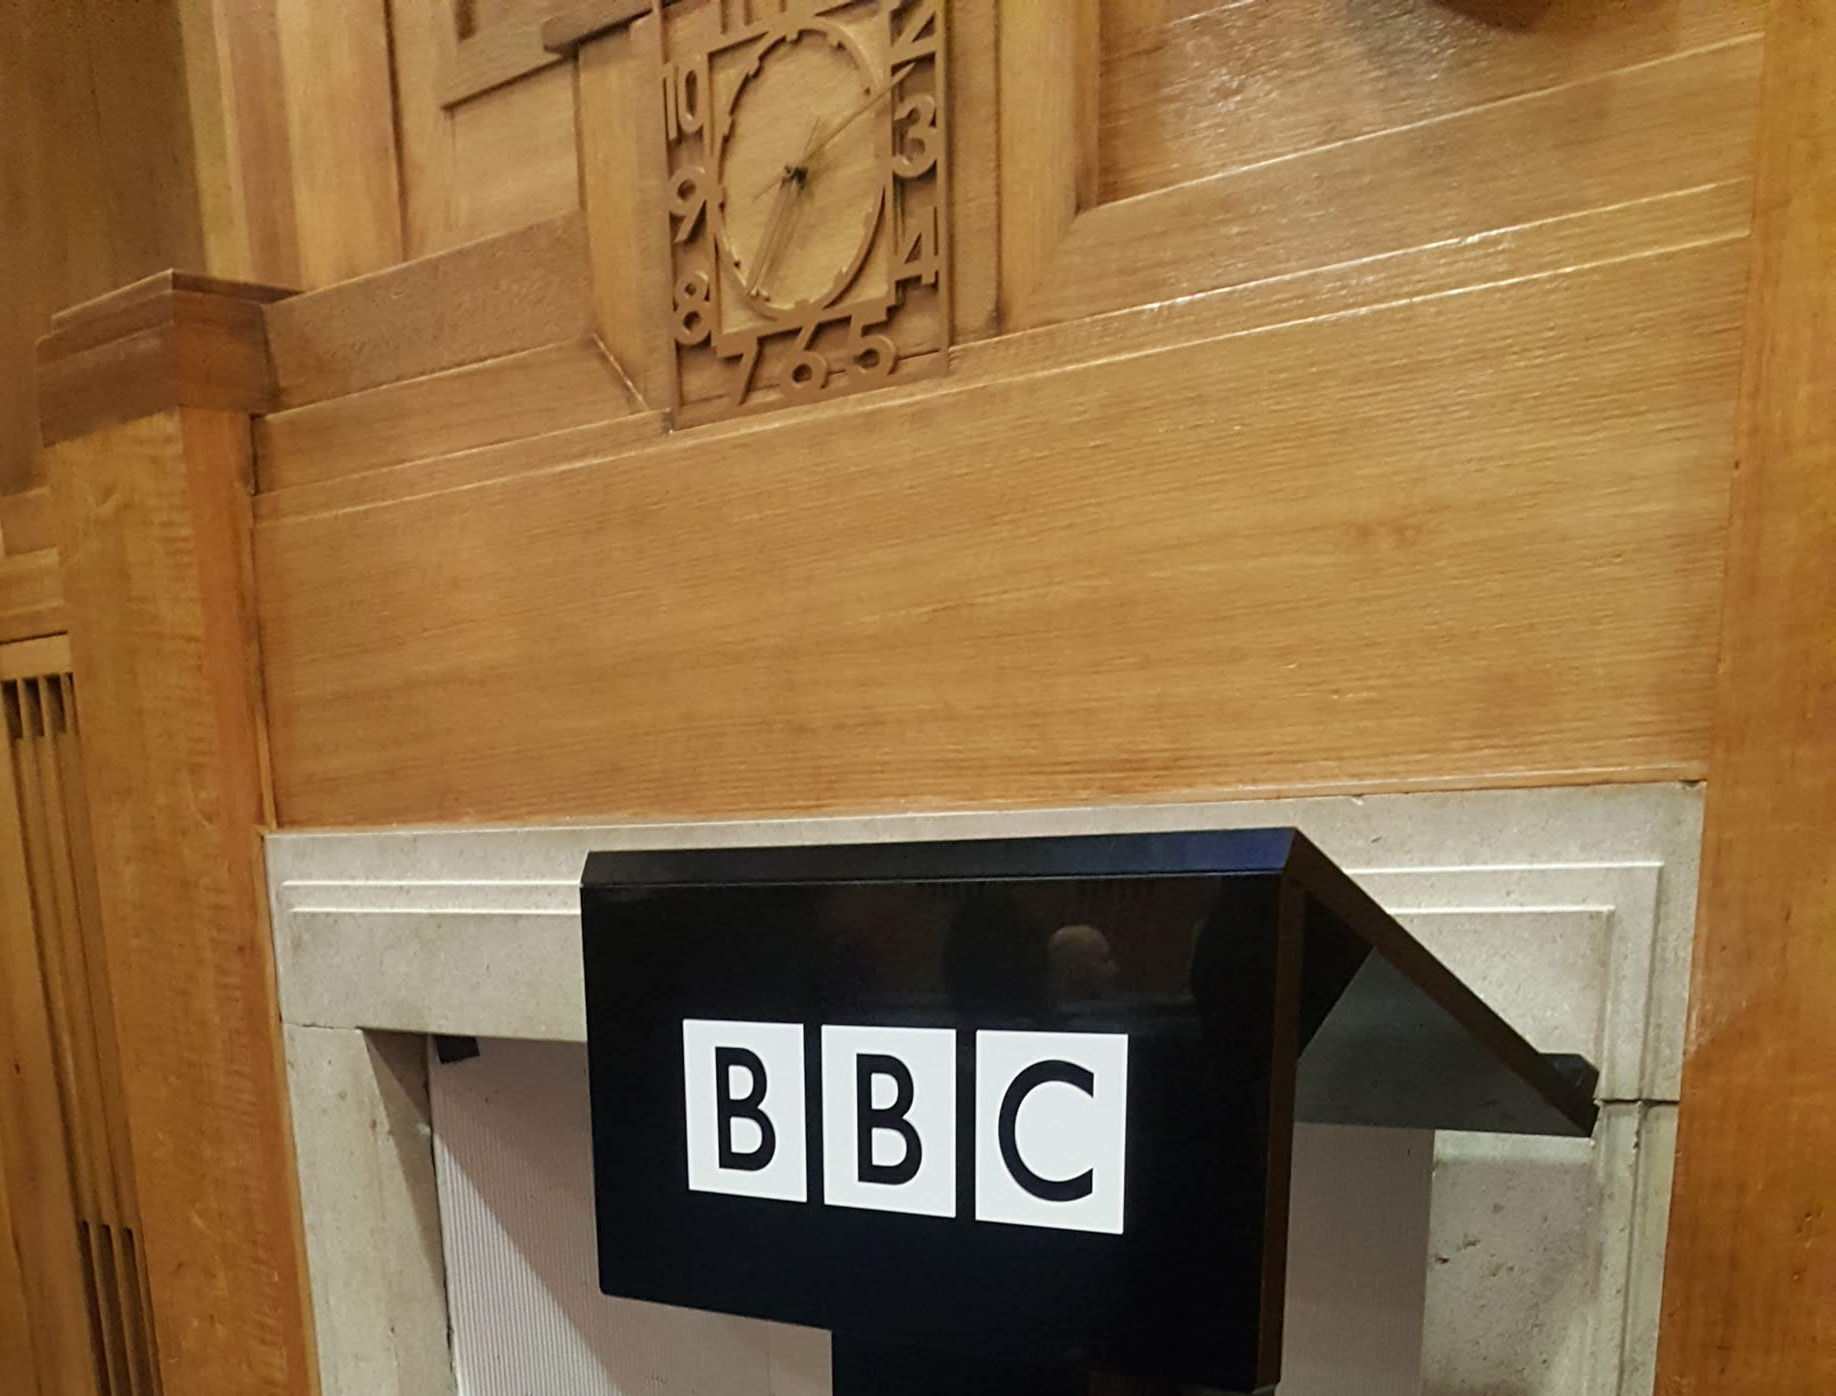 Art Deco fireplace at the Beeb